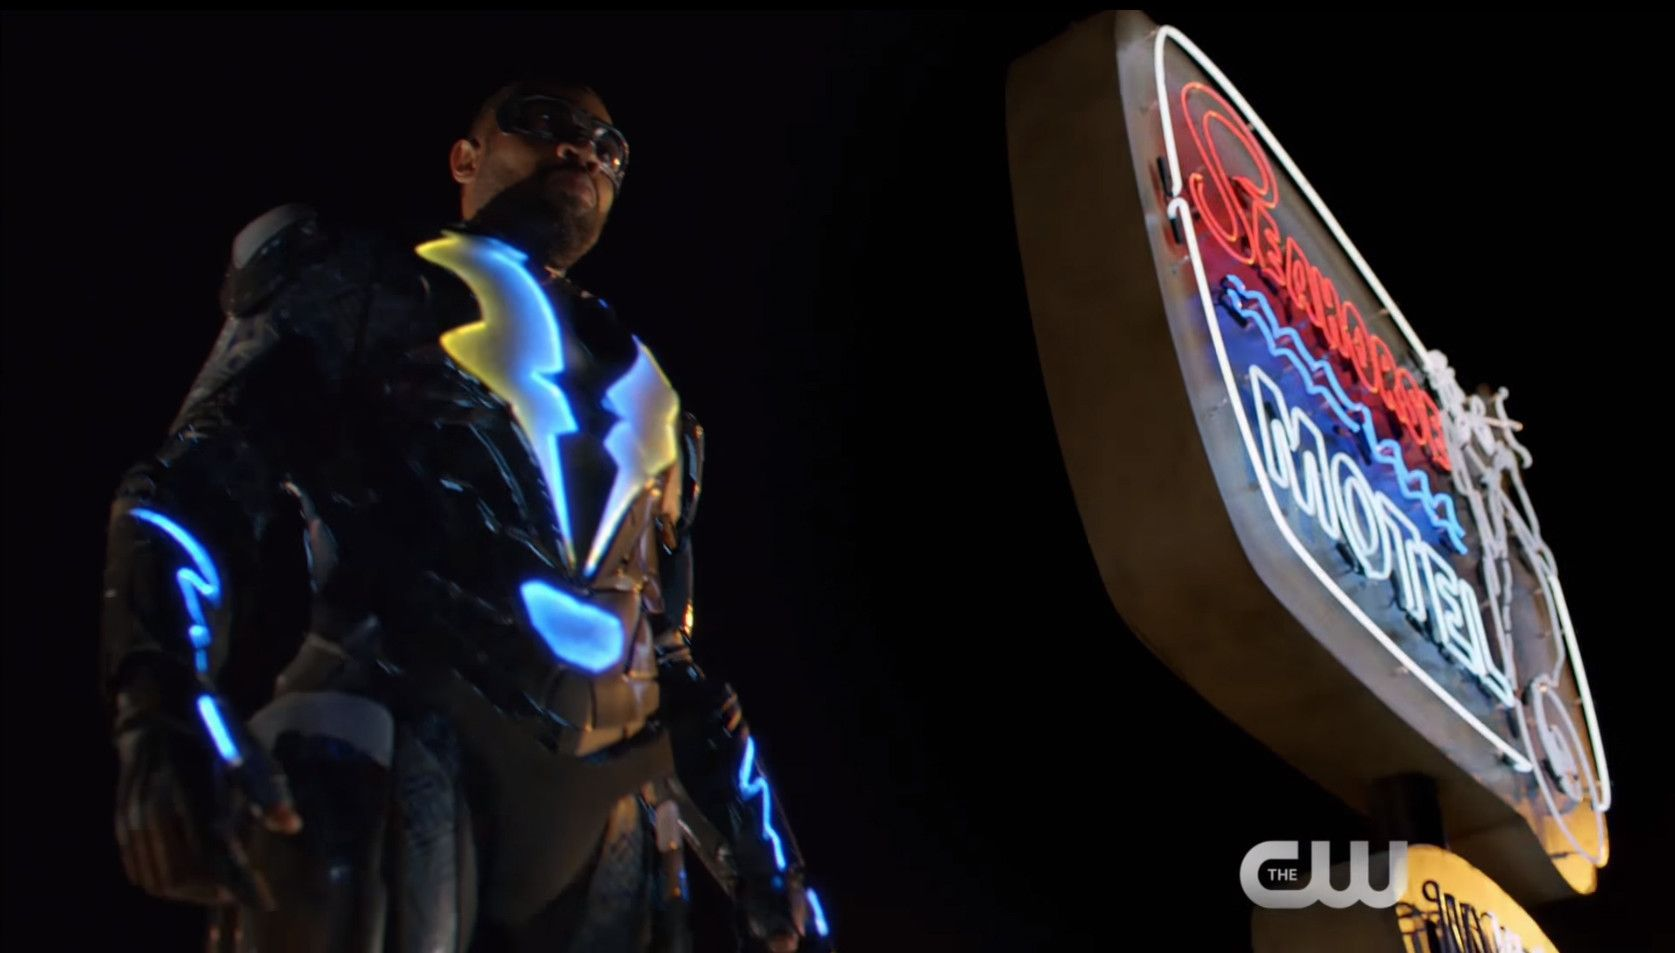 The CW's first 'Black Lightning' trailer shows a retired superhero's return to fighting crime - Los Angeles Times